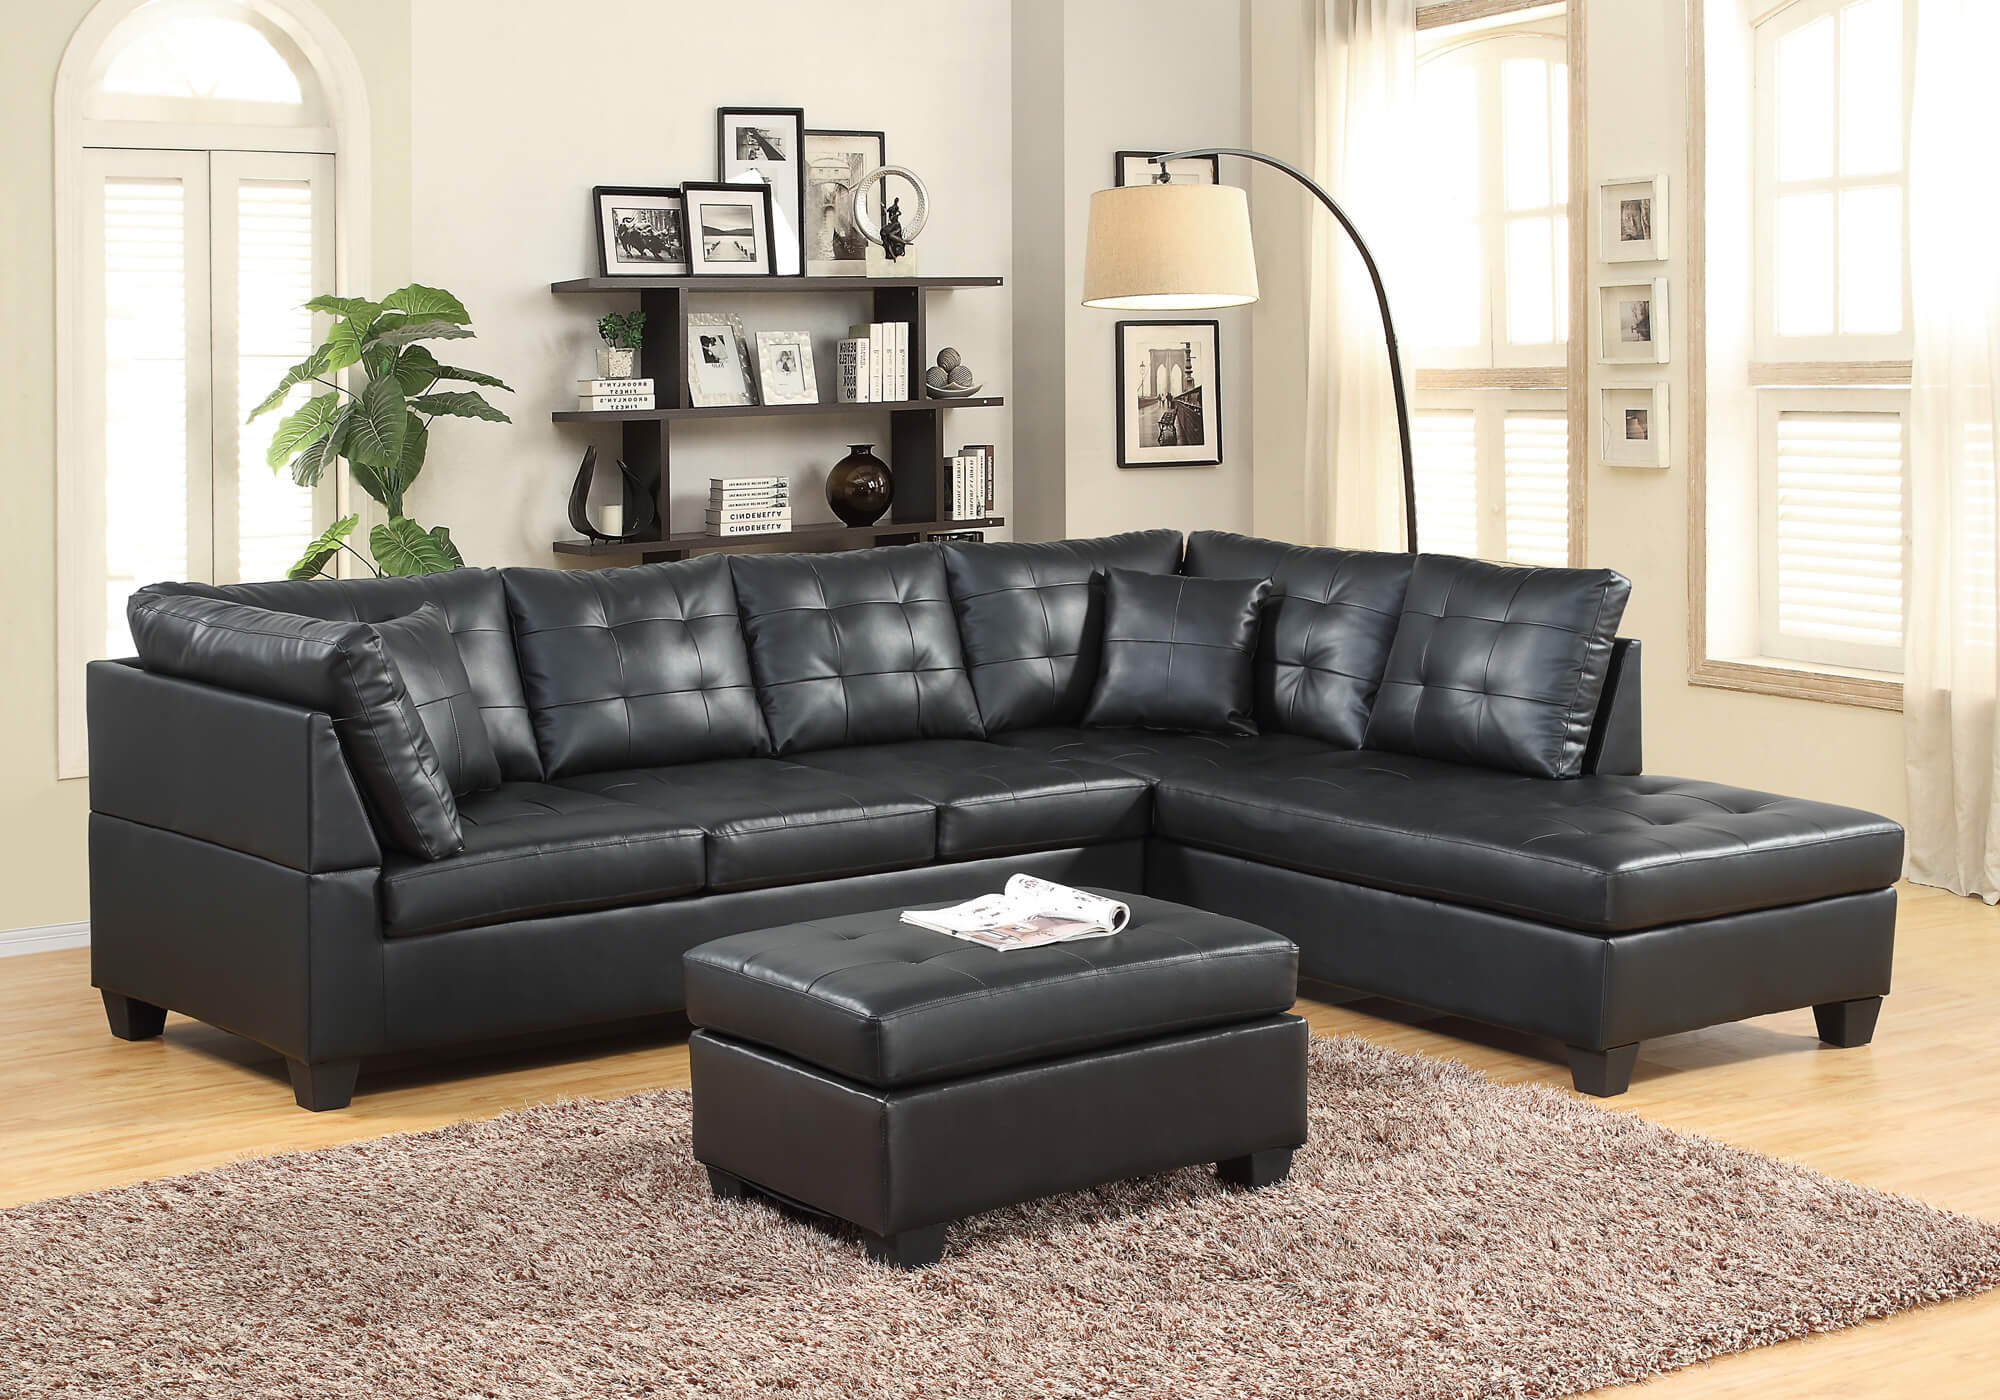 Black leather like sectiona sectional sofa sets for Apartment furniture sets